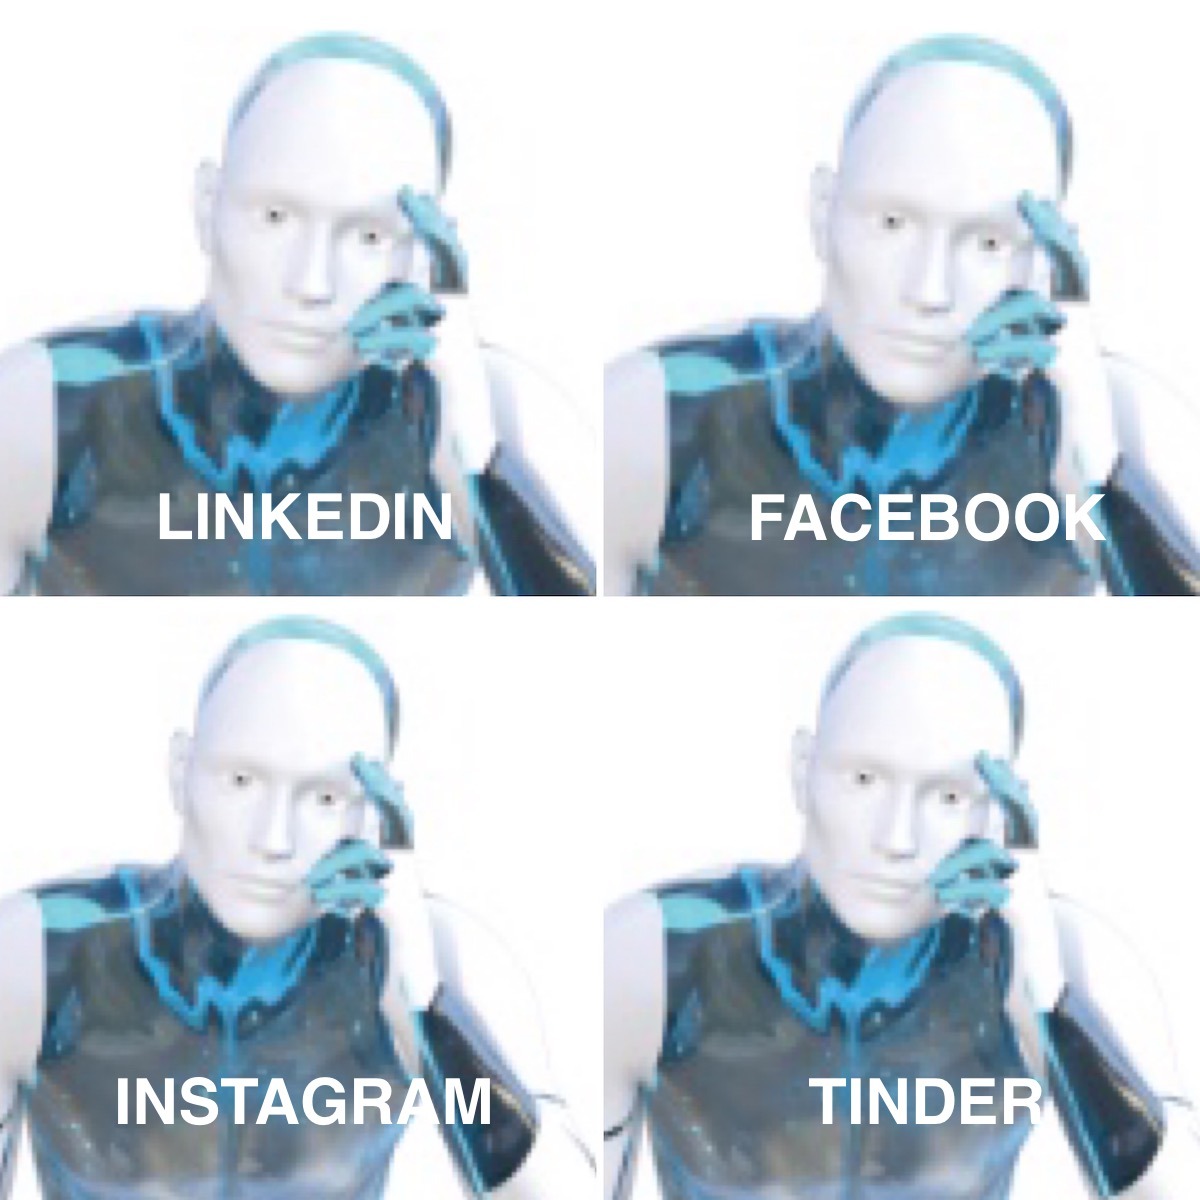 1/ OK, so we think that #AIbeings will not care at all about #SocialMedia since they can/will keep in touch via their cloud ( let's call it #Borg ) connectivity. But if they did ...  #AI #CelebrityMemes pic.twitter.com/EBRmLPYMvS